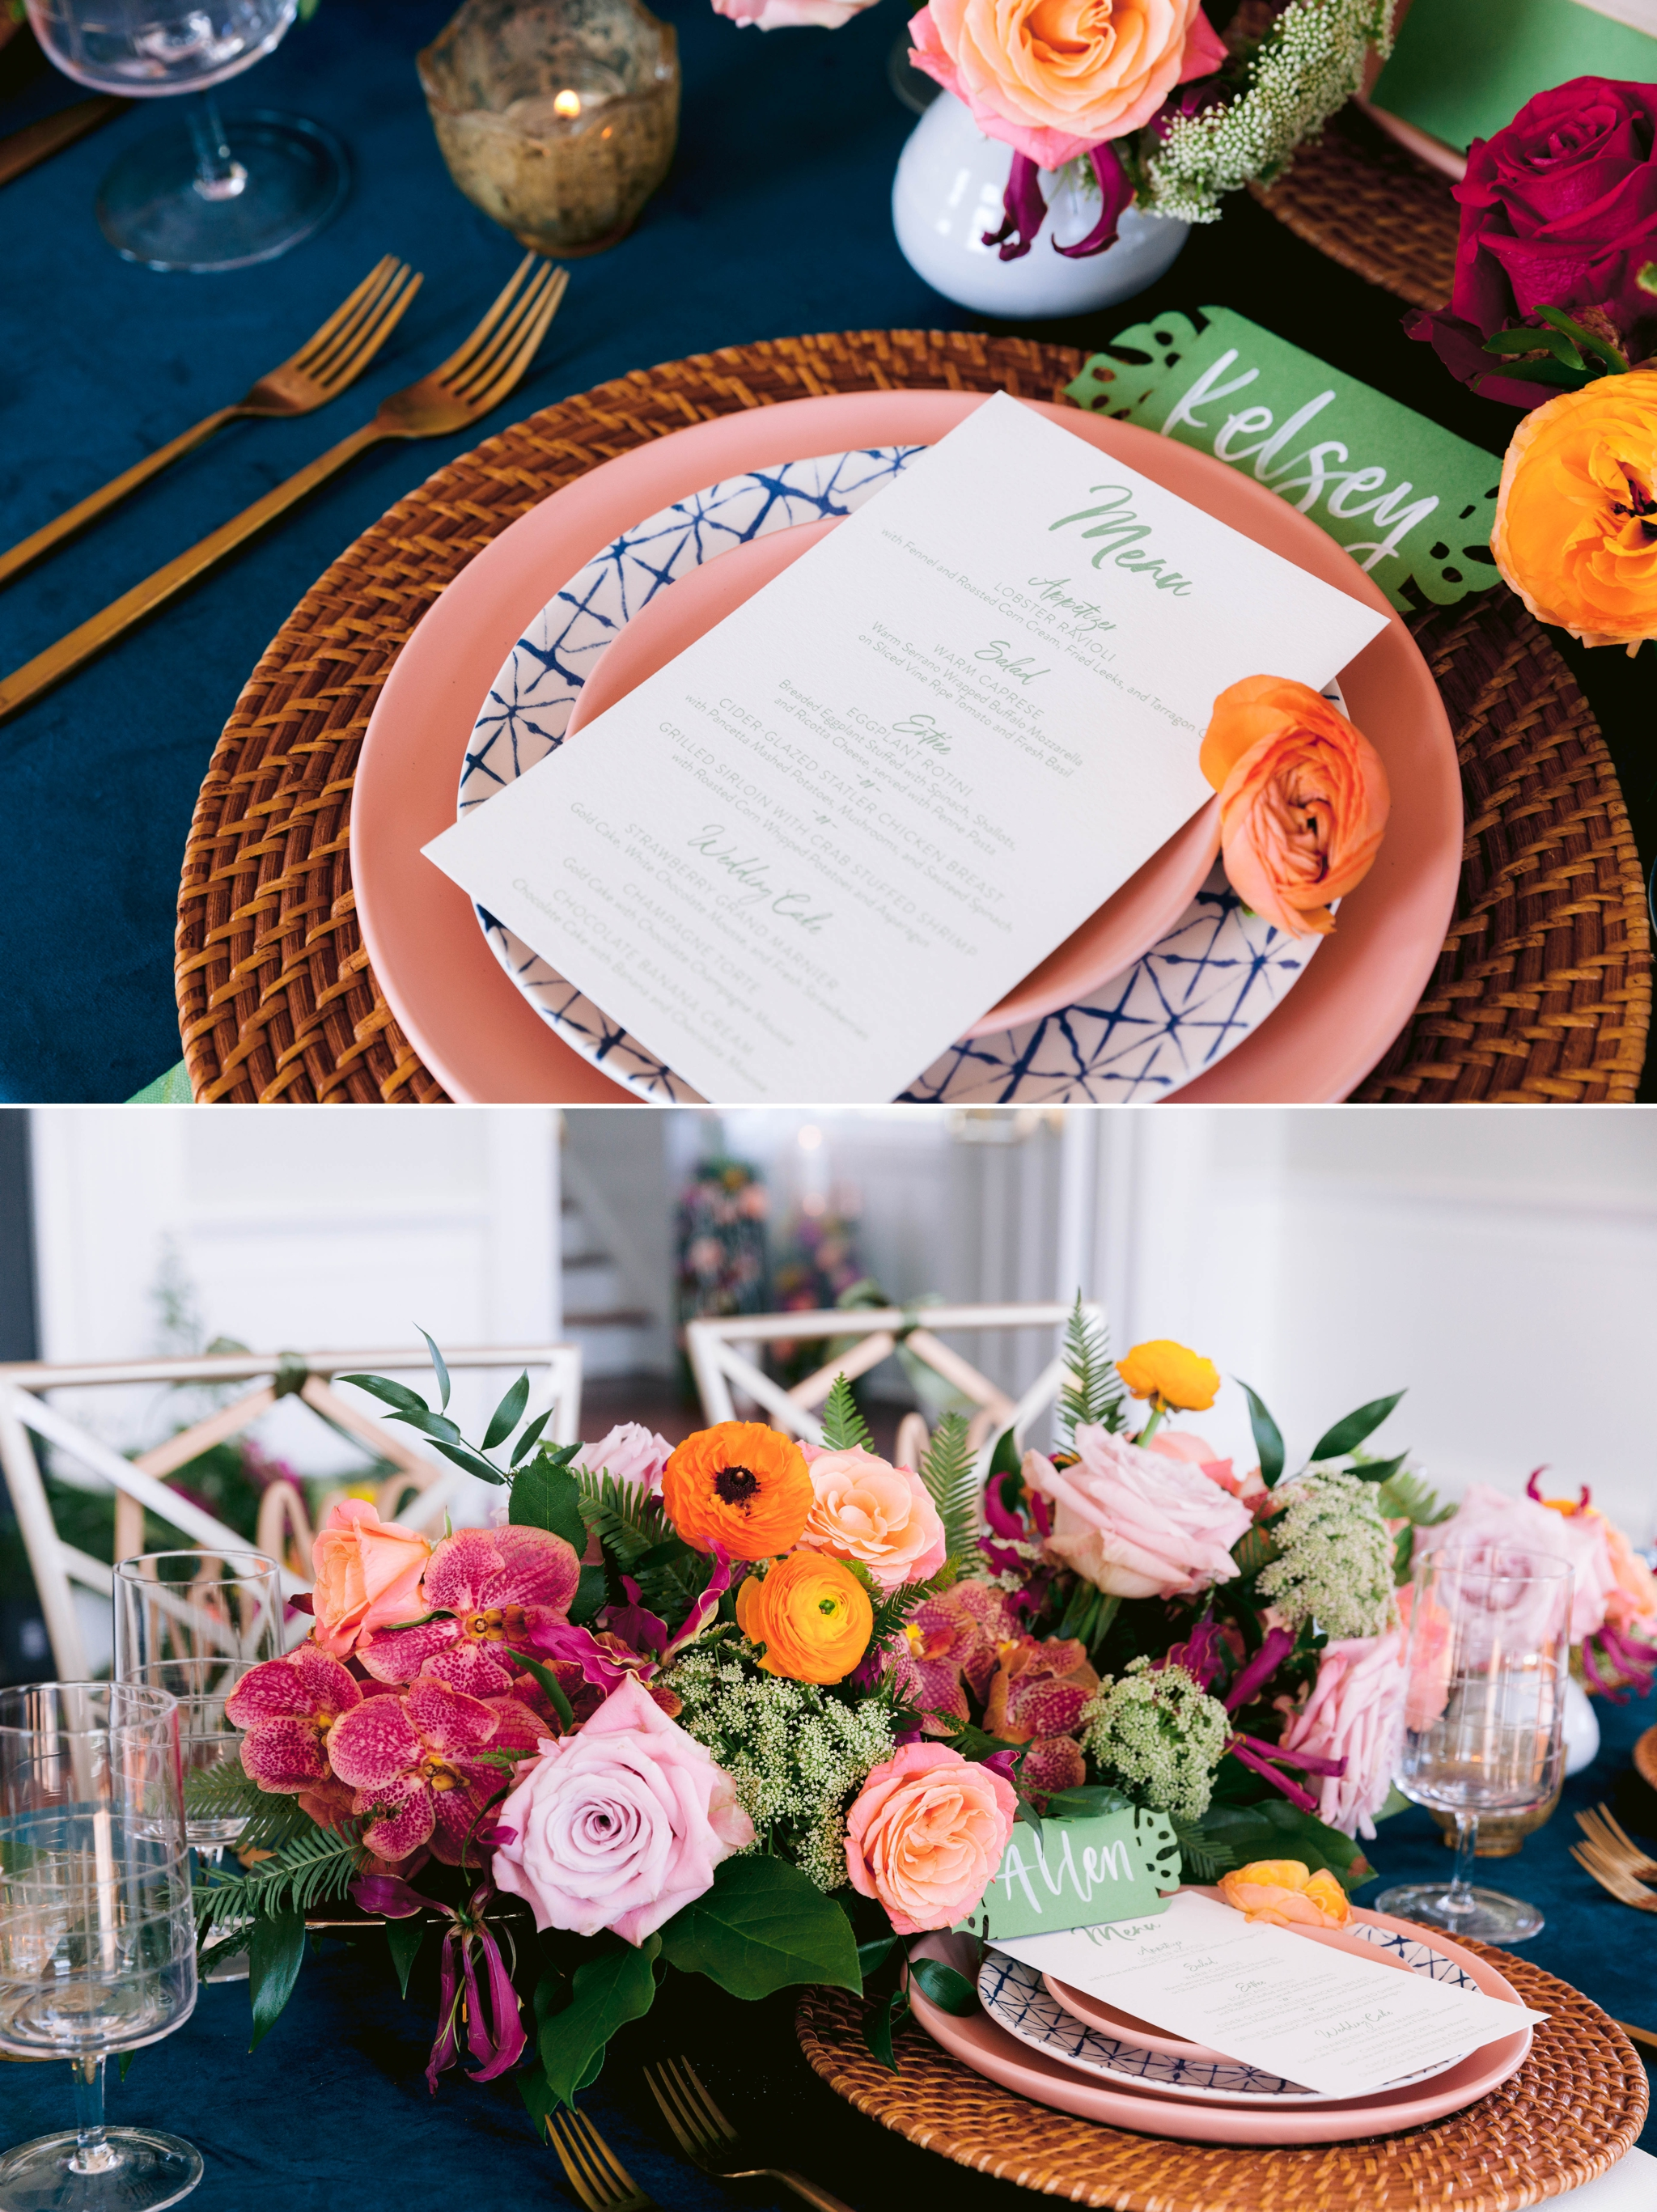 Table Setting with a gorgeous colorful flower arrangement, blush and blue plates with gold flatware and a tropical name card as well as a calligraphy menue